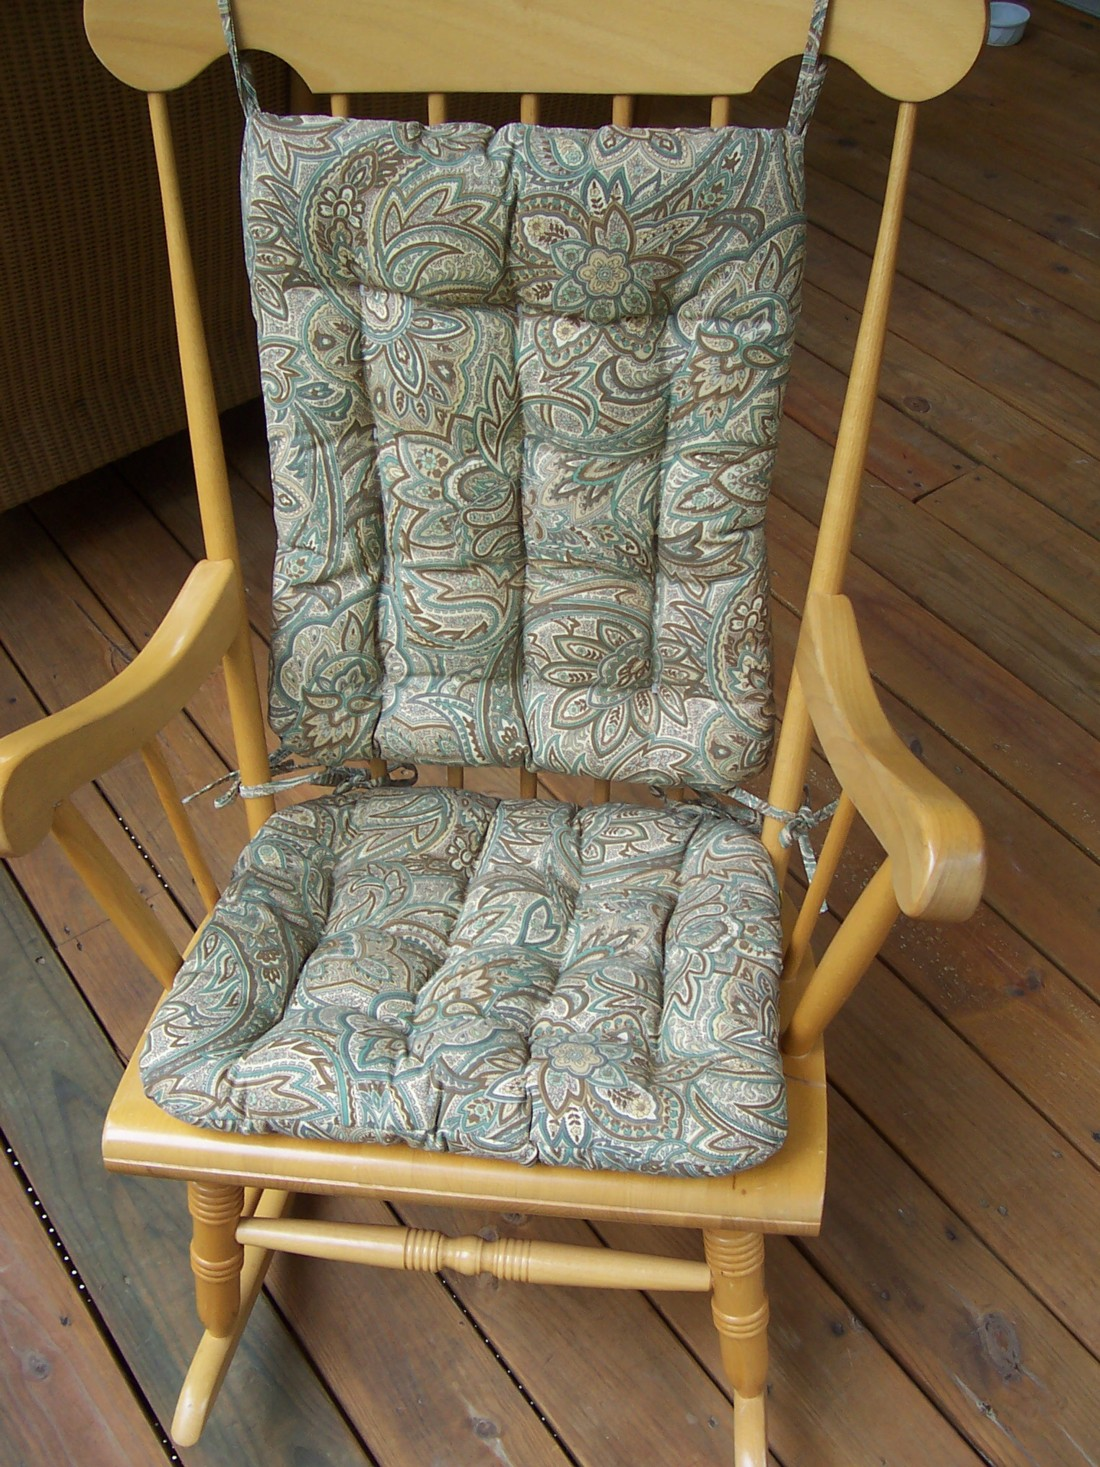 Strange Rocking Chair Cushion Sets And More Clearance Machost Co Dining Chair Design Ideas Machostcouk